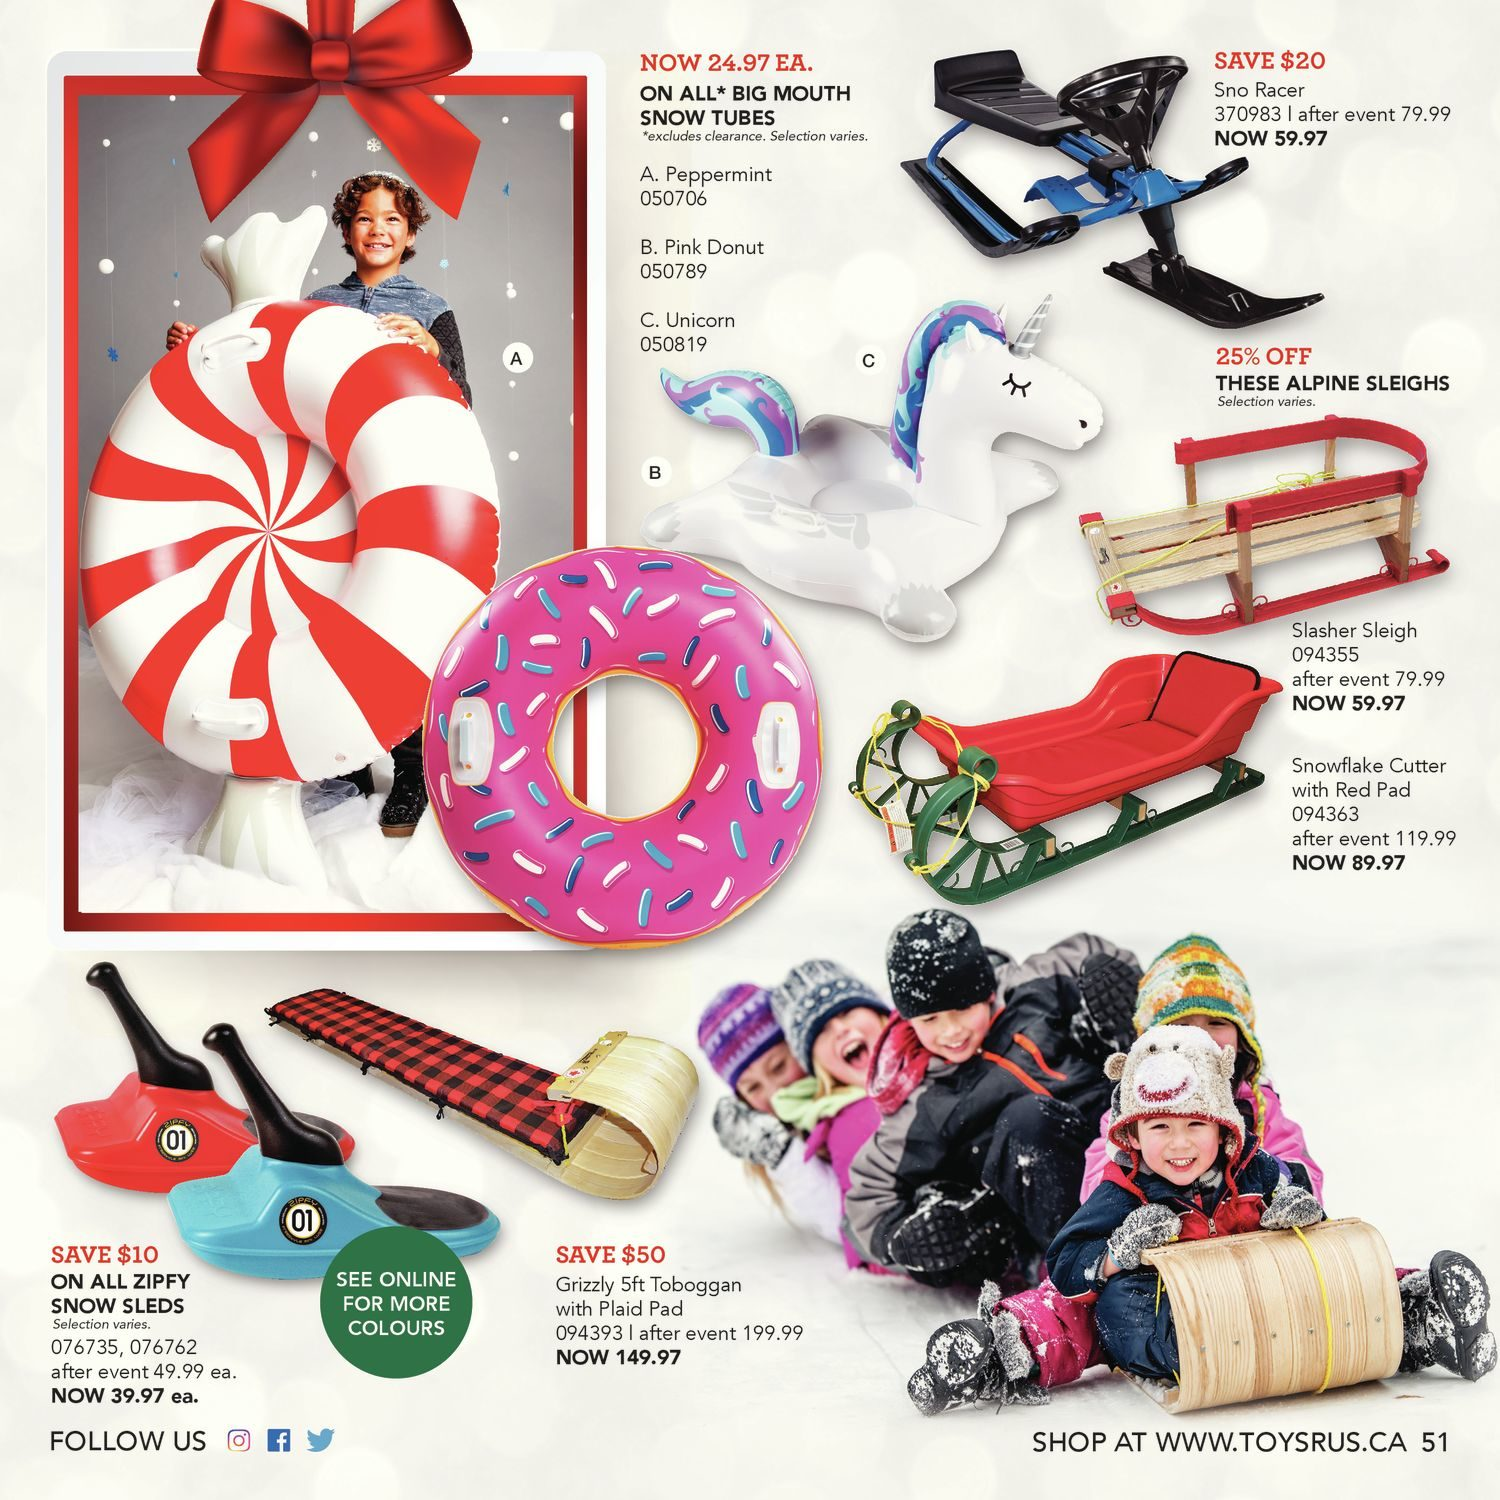 Toys R Us Weekly Flyer Ultimate Toy Guide 2018 Nov 2 15 Buy Hexbug Circuit Boards Remote Control Skateboard Ramp Assorted